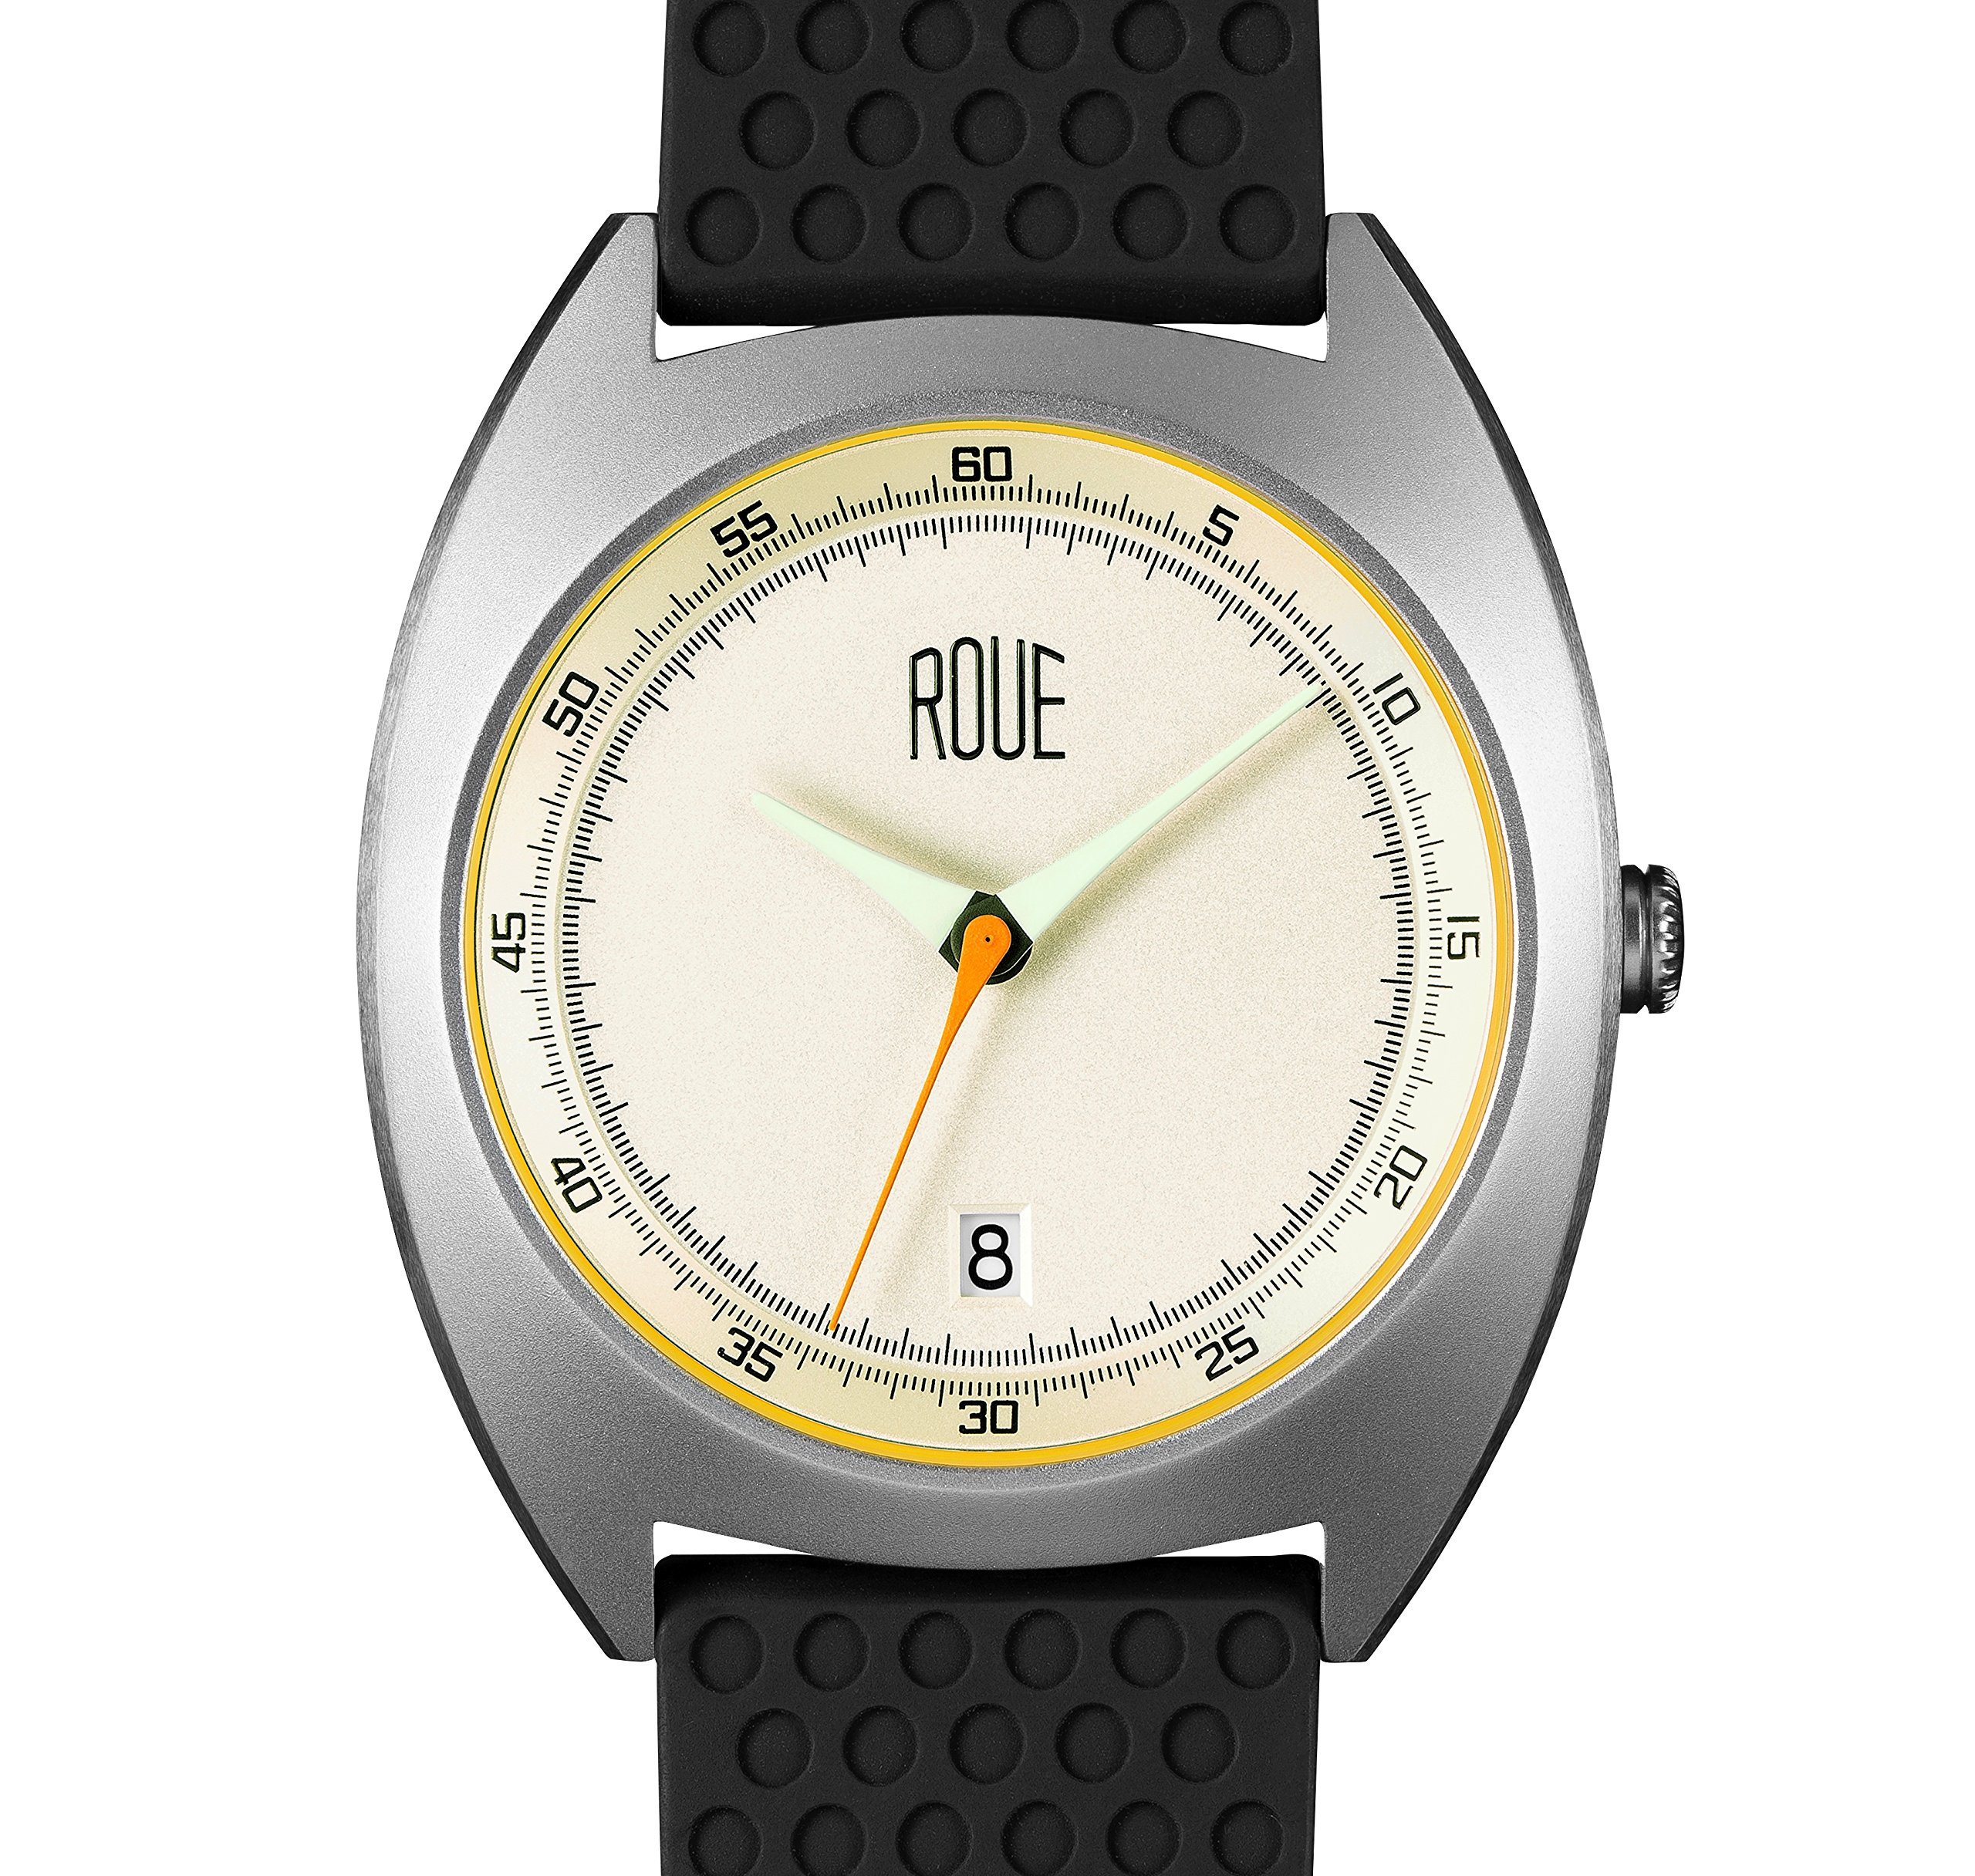 ROUE CAL One Watch, 1930s Racing Style, 41.5mm sand Blasted Stainless Steel case, Silicone + Nylon front/leather back, Sapphire Crystal with anti-reflective treatment glass